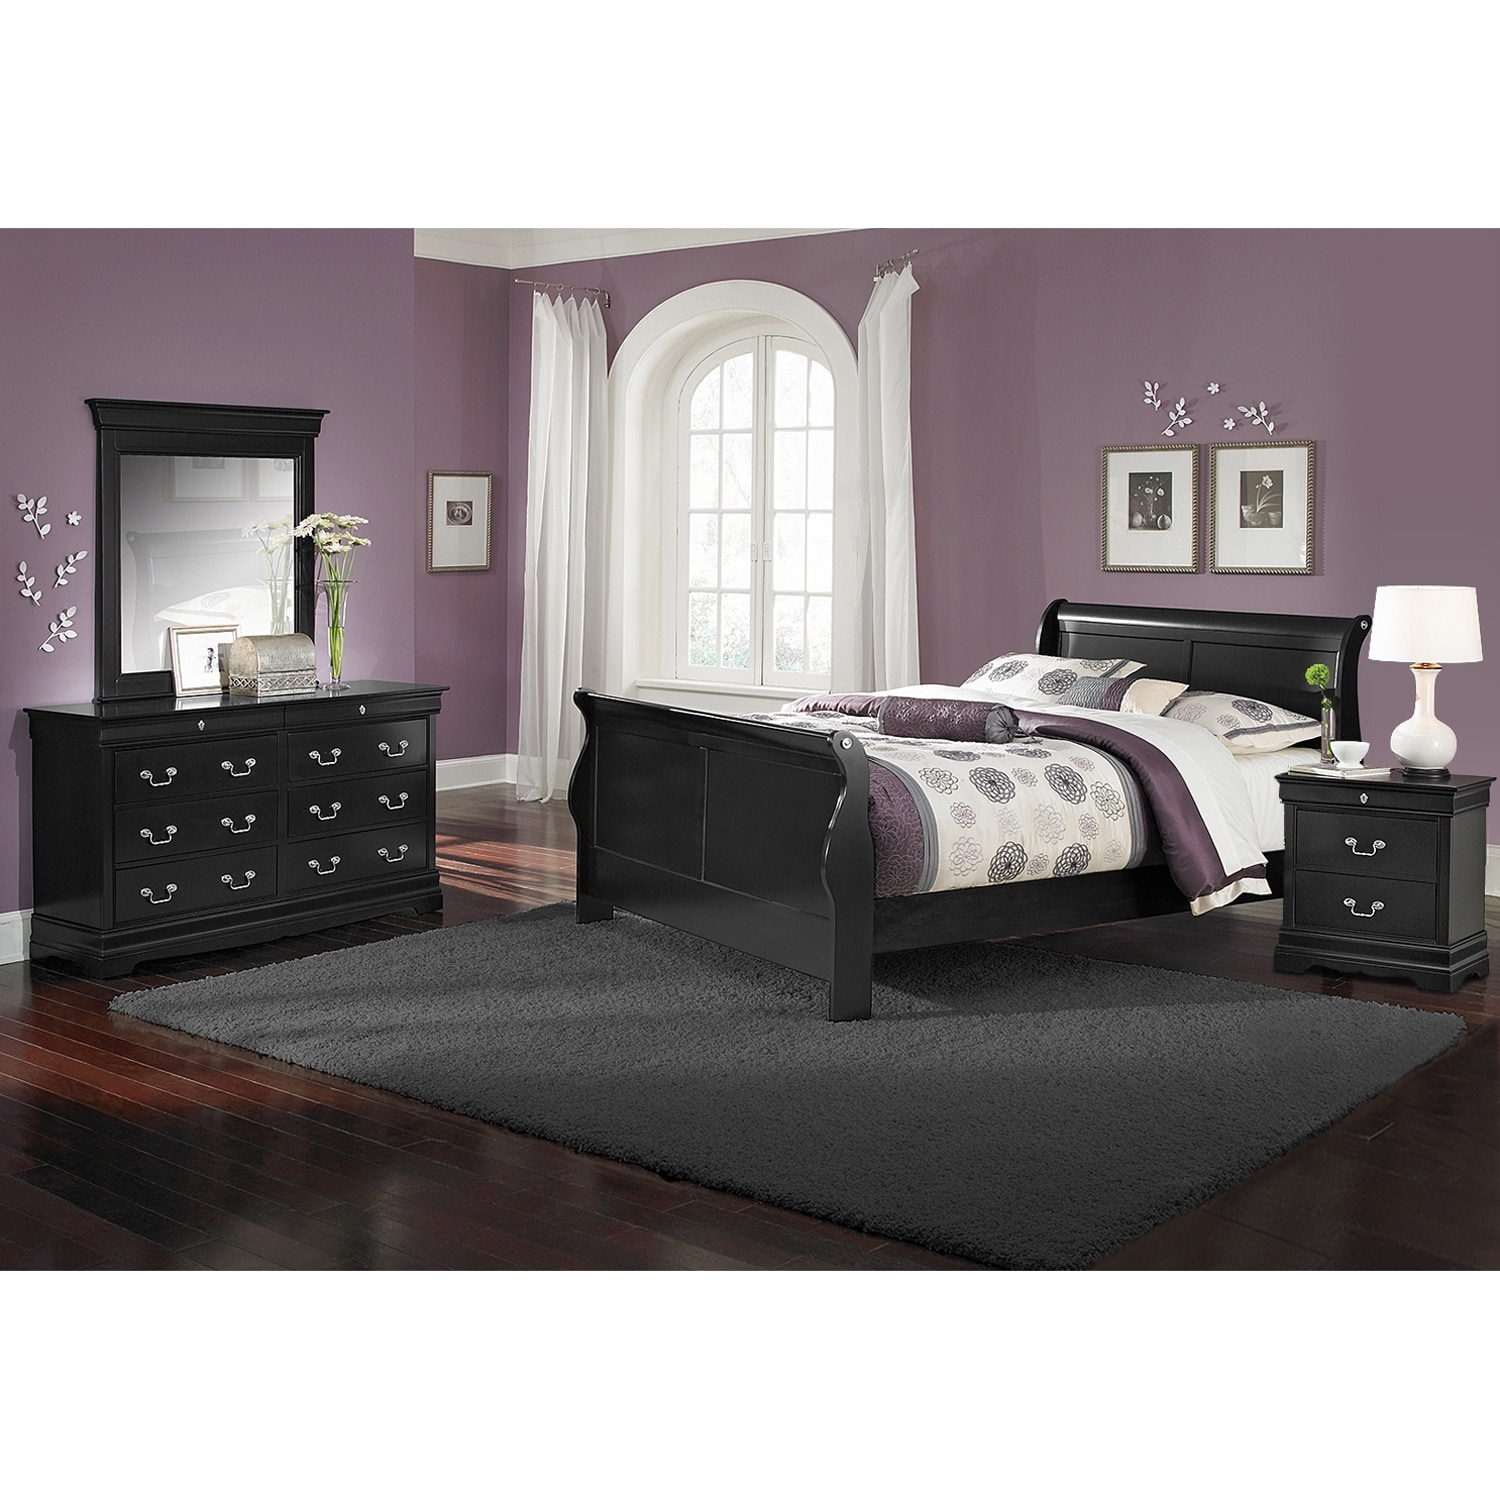 Bedroom Furniture - Neo Classic Youth 6-Piece Full Bedroom Set - Black